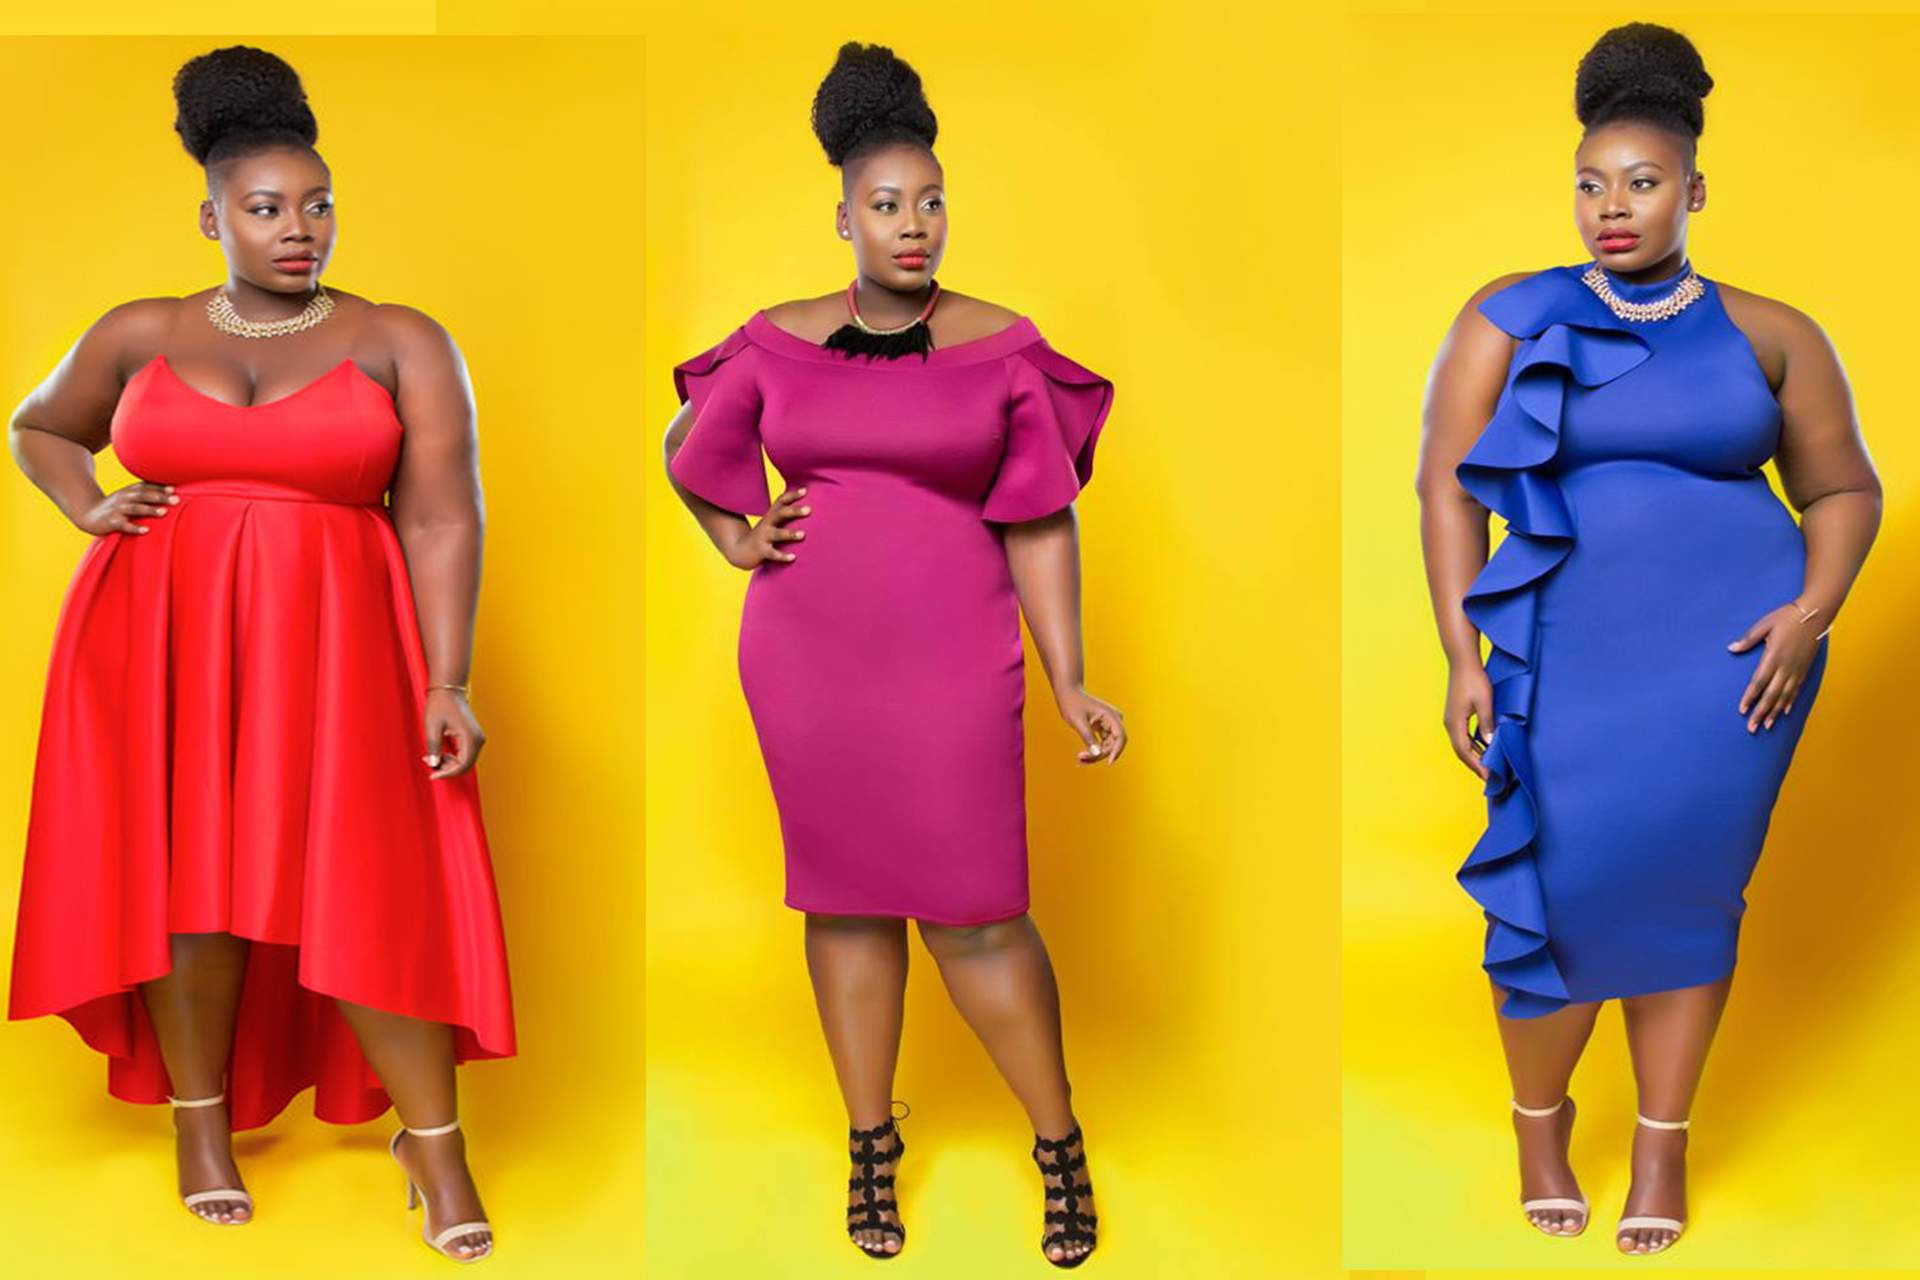 908e4ae1ecd Flaunt You Curves in New Plus Size Designer Love Creed!